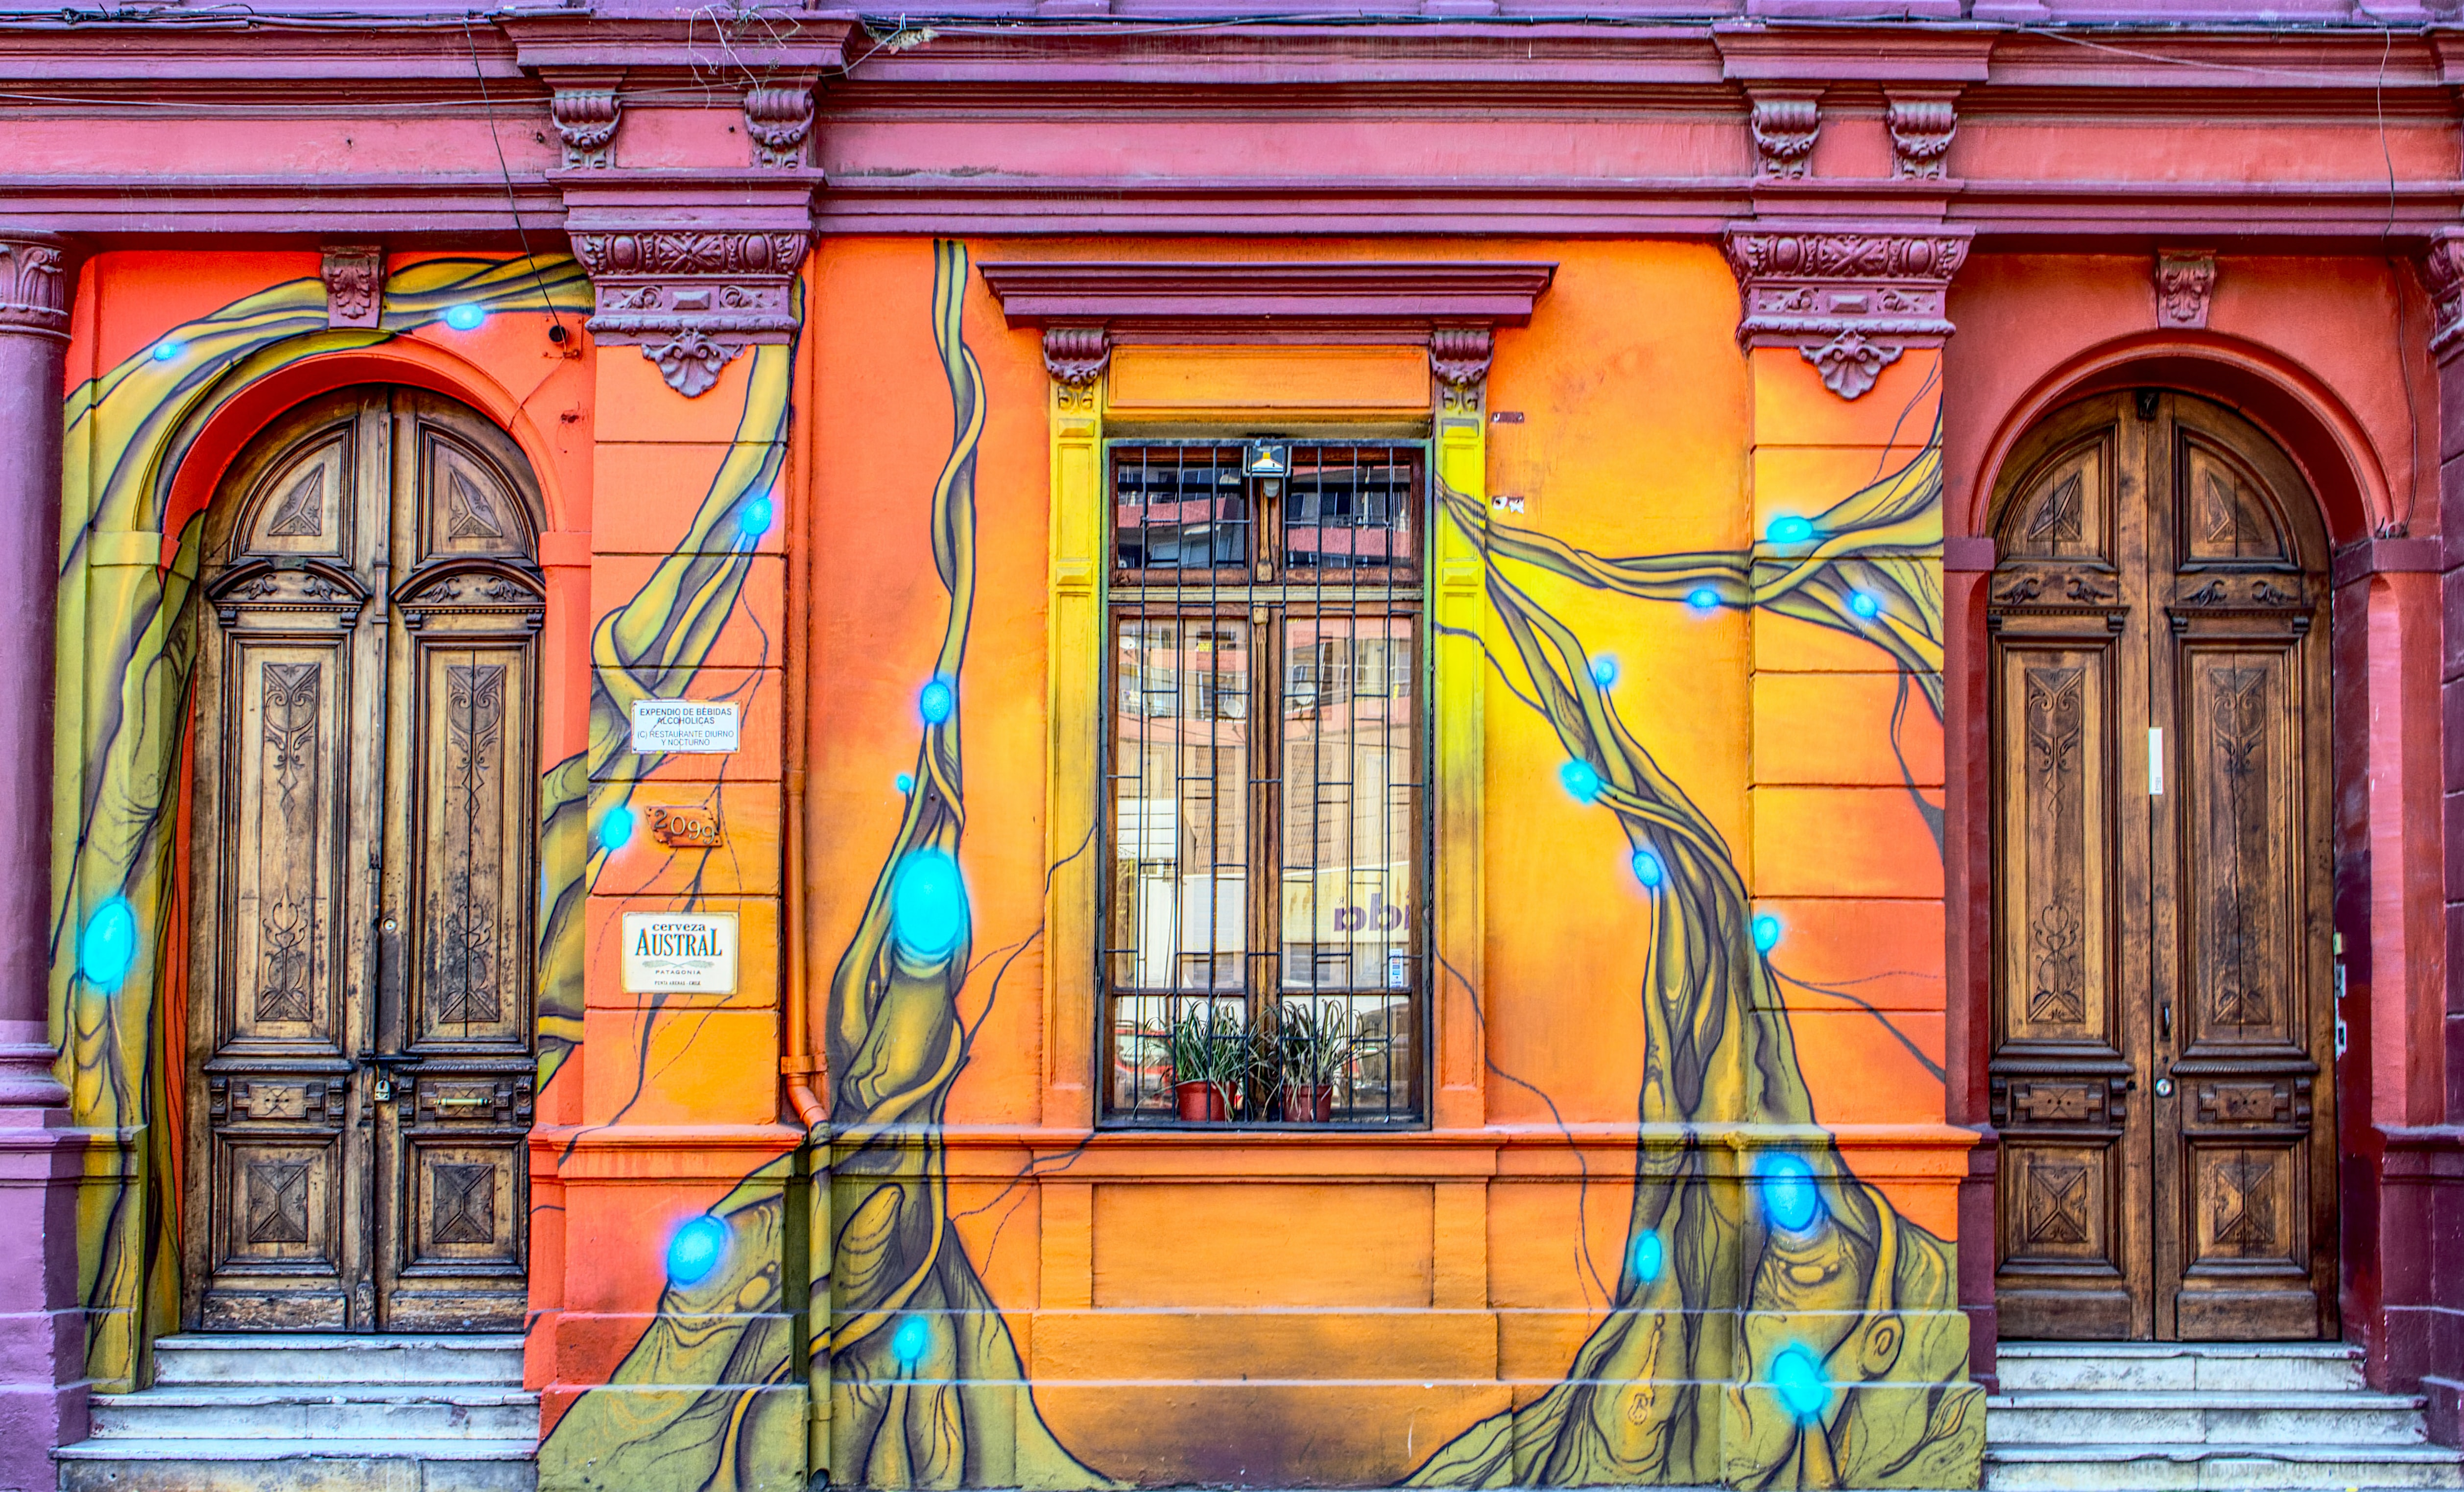 Colorful sunburst wall art on building wall with windows and wooden doors, Santiago